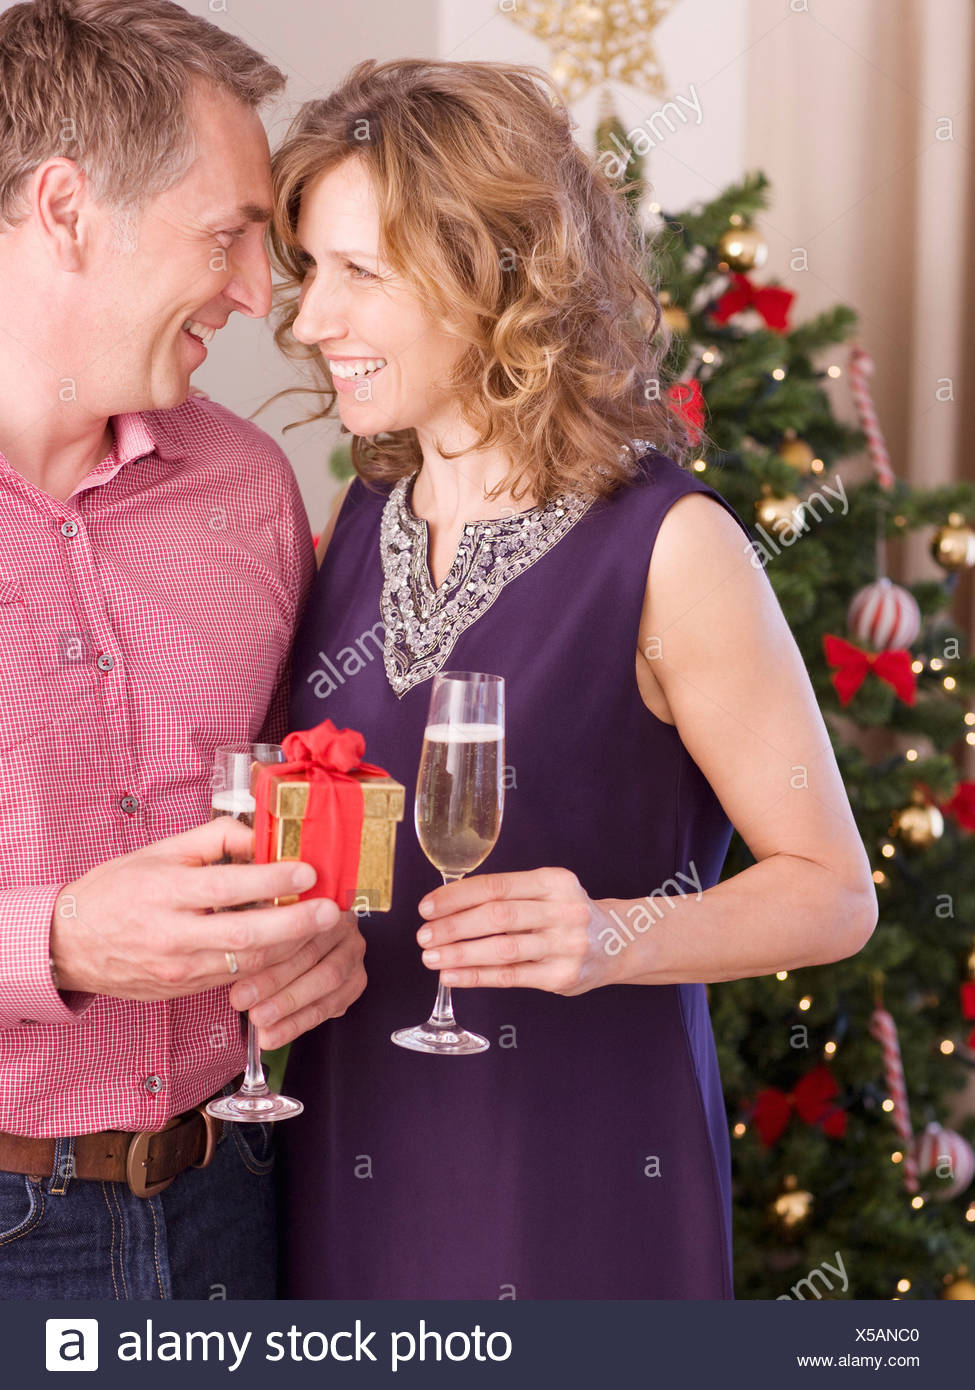 Couple holding champagne and gift near Christmas tree Stock Photo